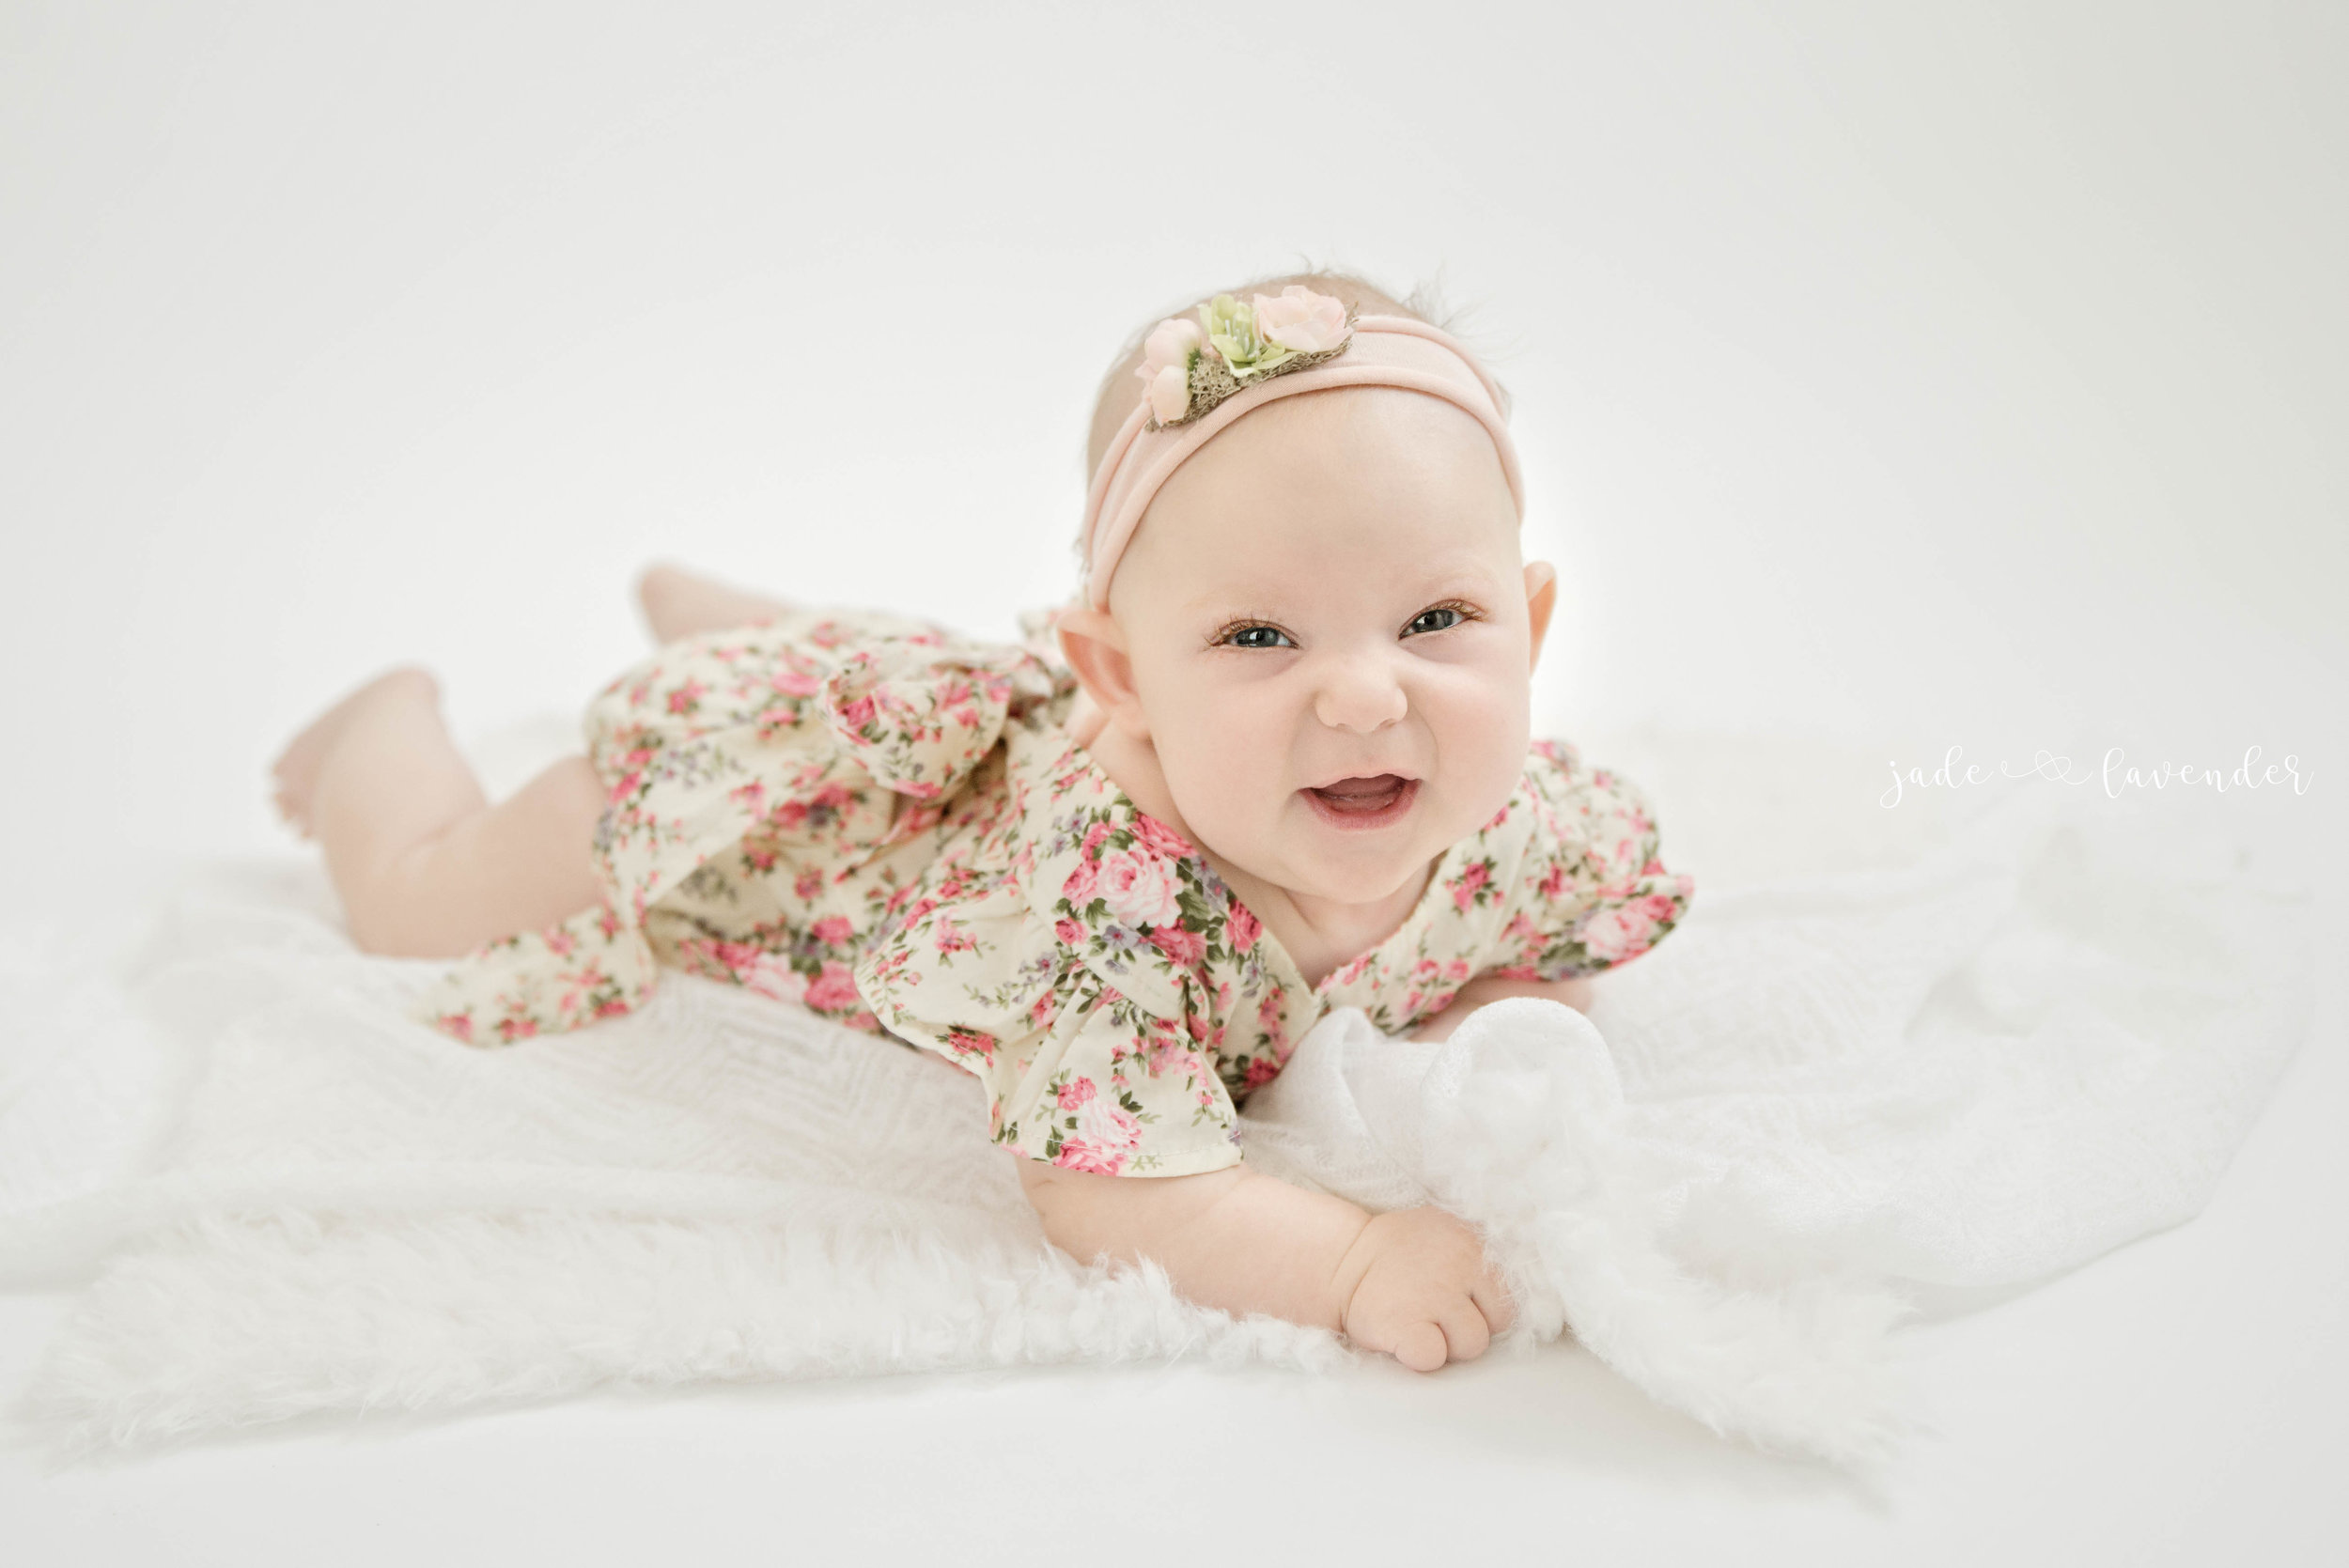 baby-photography-infant-images-amazing-.jpg